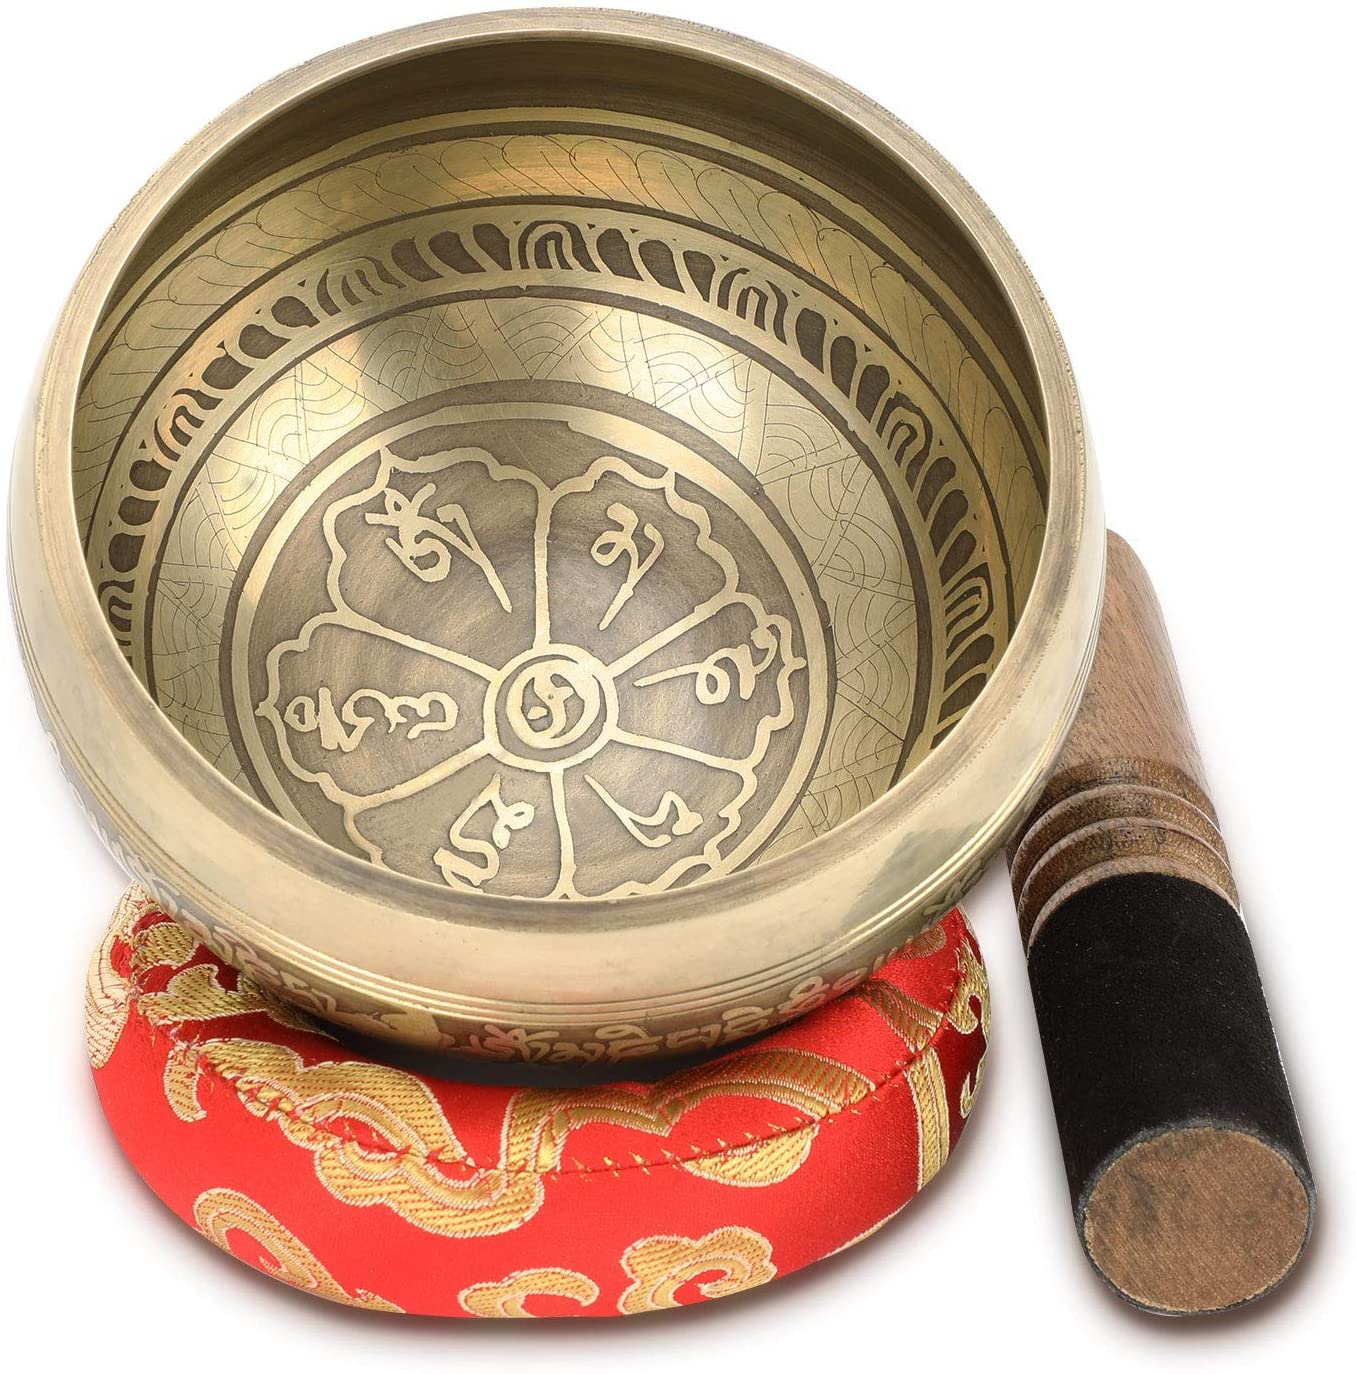 Singing Bowl Tibetan Meditation Bowl Set With Dual Surface Mallet and Silk Cushion,Promotes Peace, Chakra Healing And Mindfulness